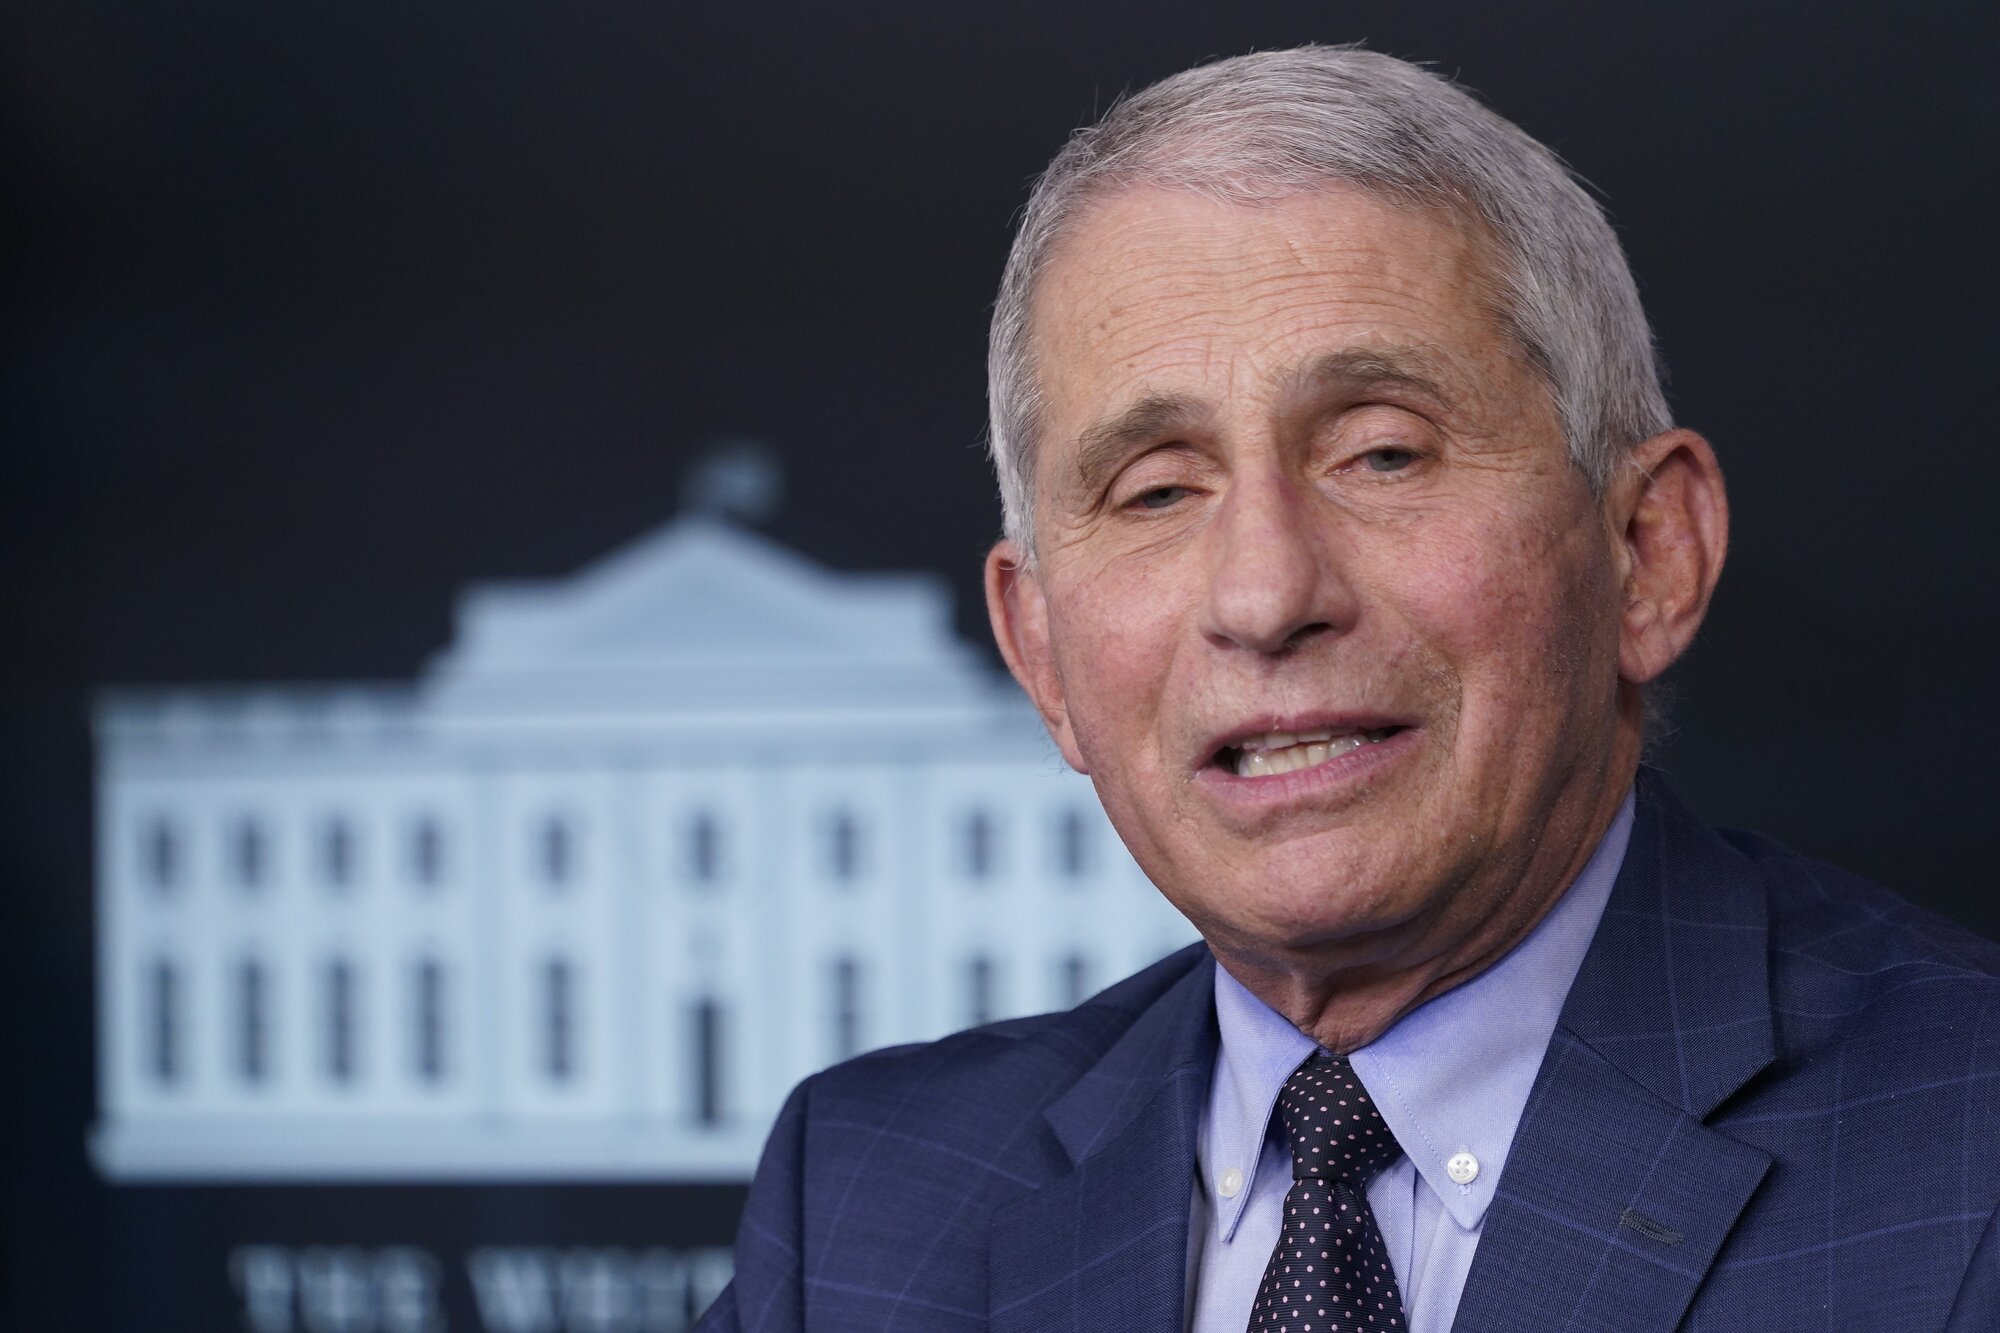 Warning: Dr. Fauci says he's very worried about the coronavirus mutations in these 2 states